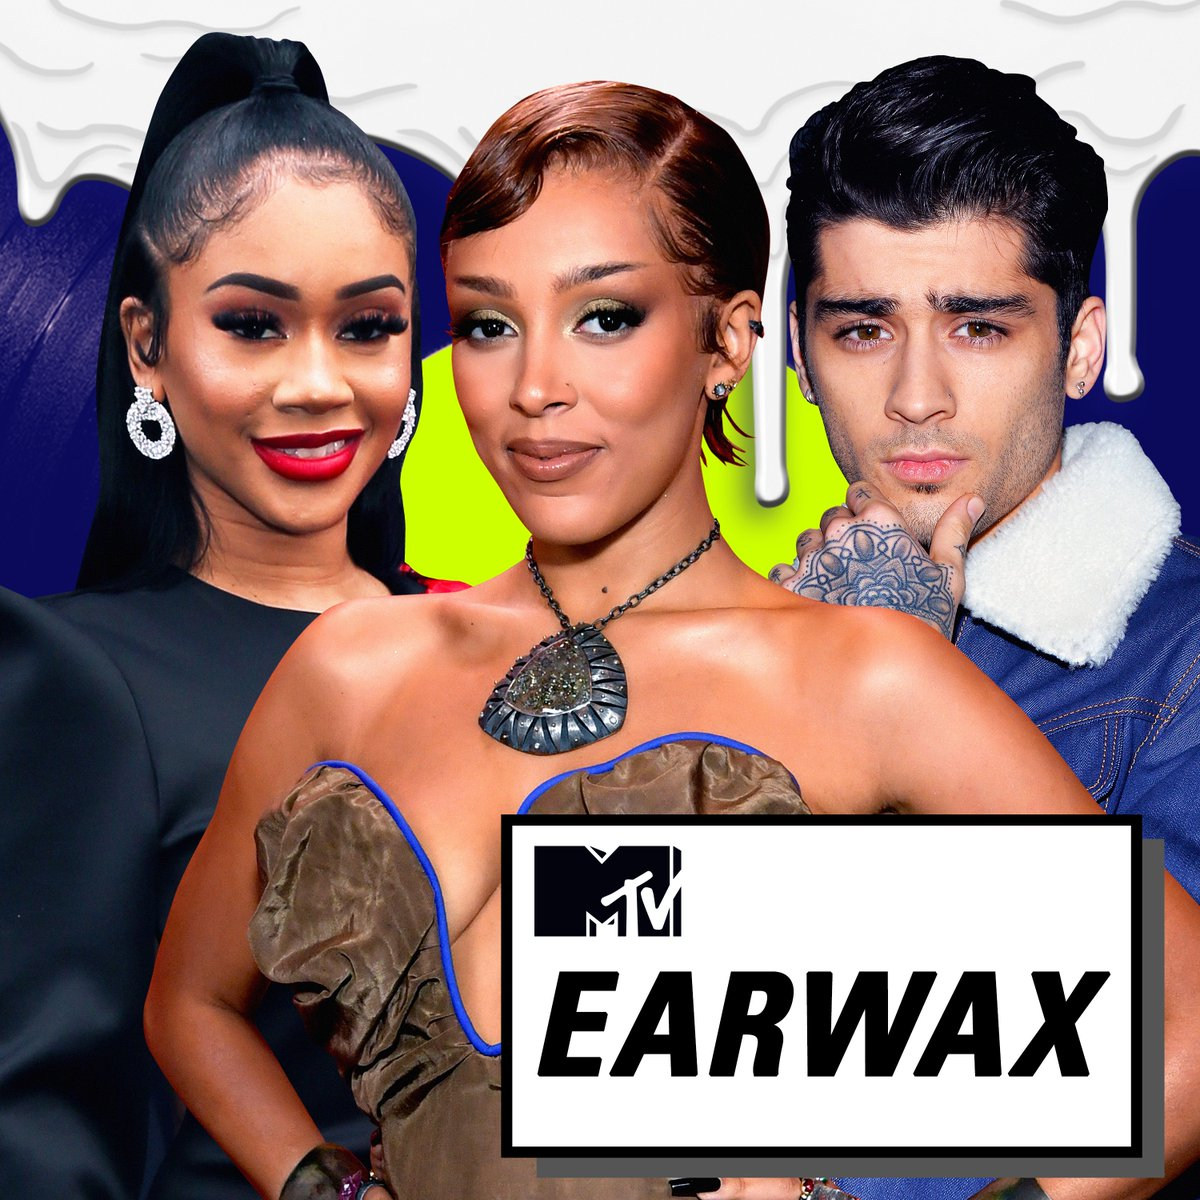 Amp-up your weekend with our #EarWax playlist featuring hits from @Saweetie, @DojaCat and @zaynmalik and MORE! 🔥  Listen here on @AppleMusic: